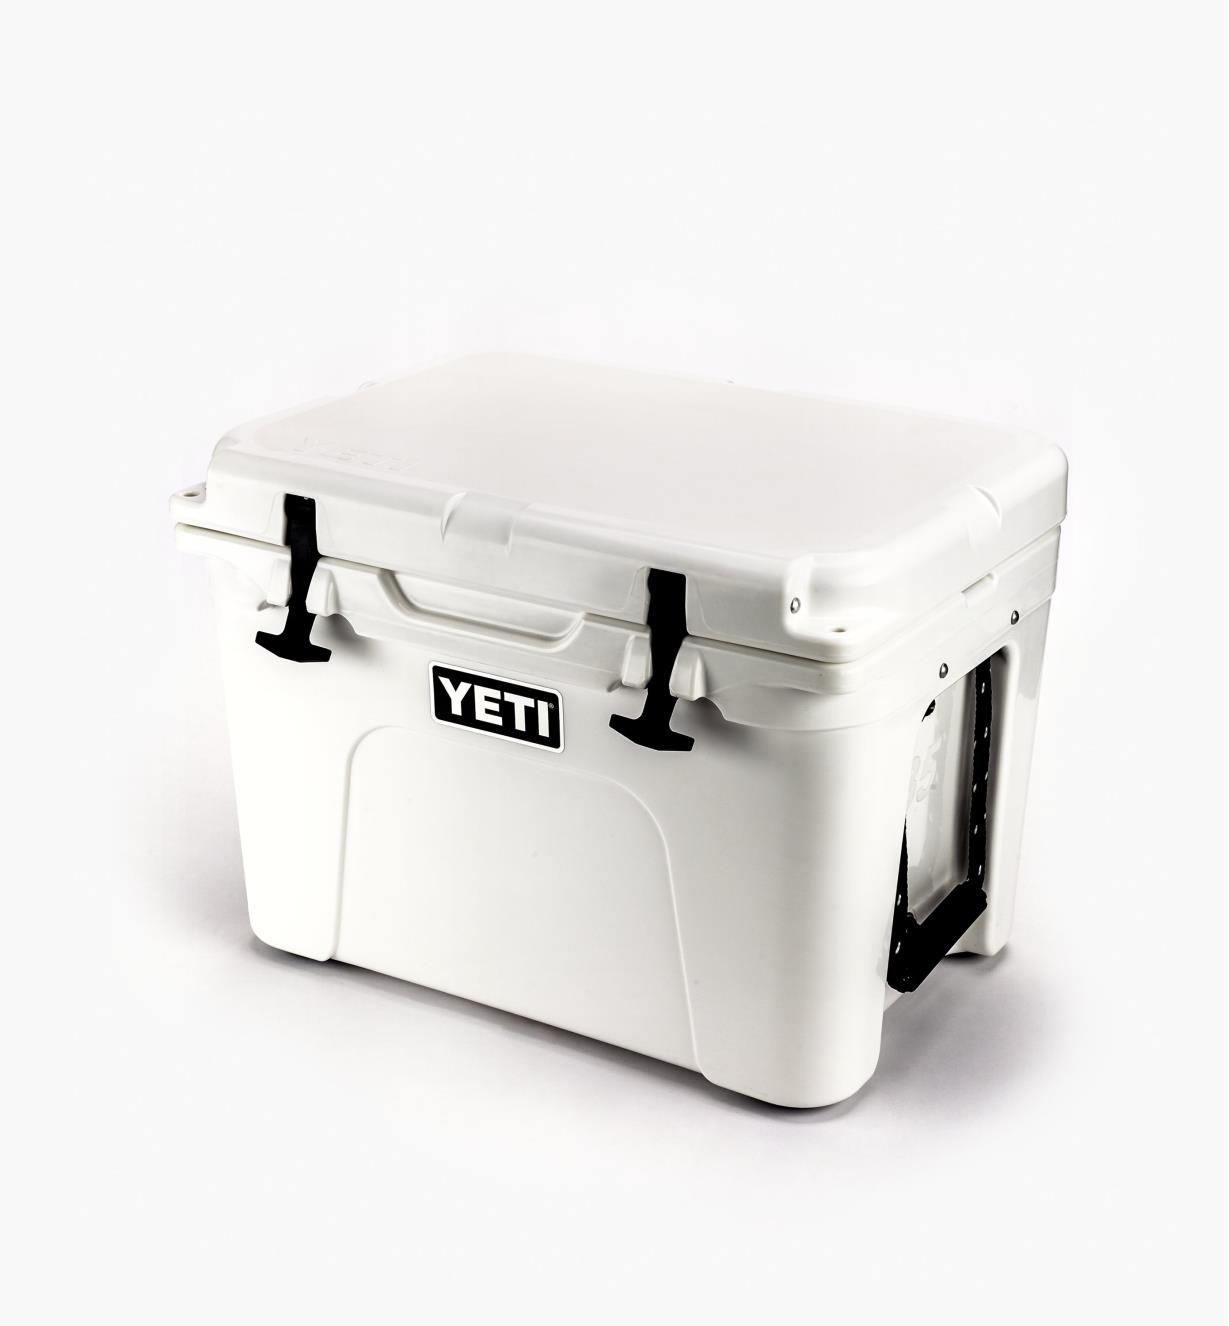 74K0010 - Yeti Tundra Hard-Sided 35 Cooler, White